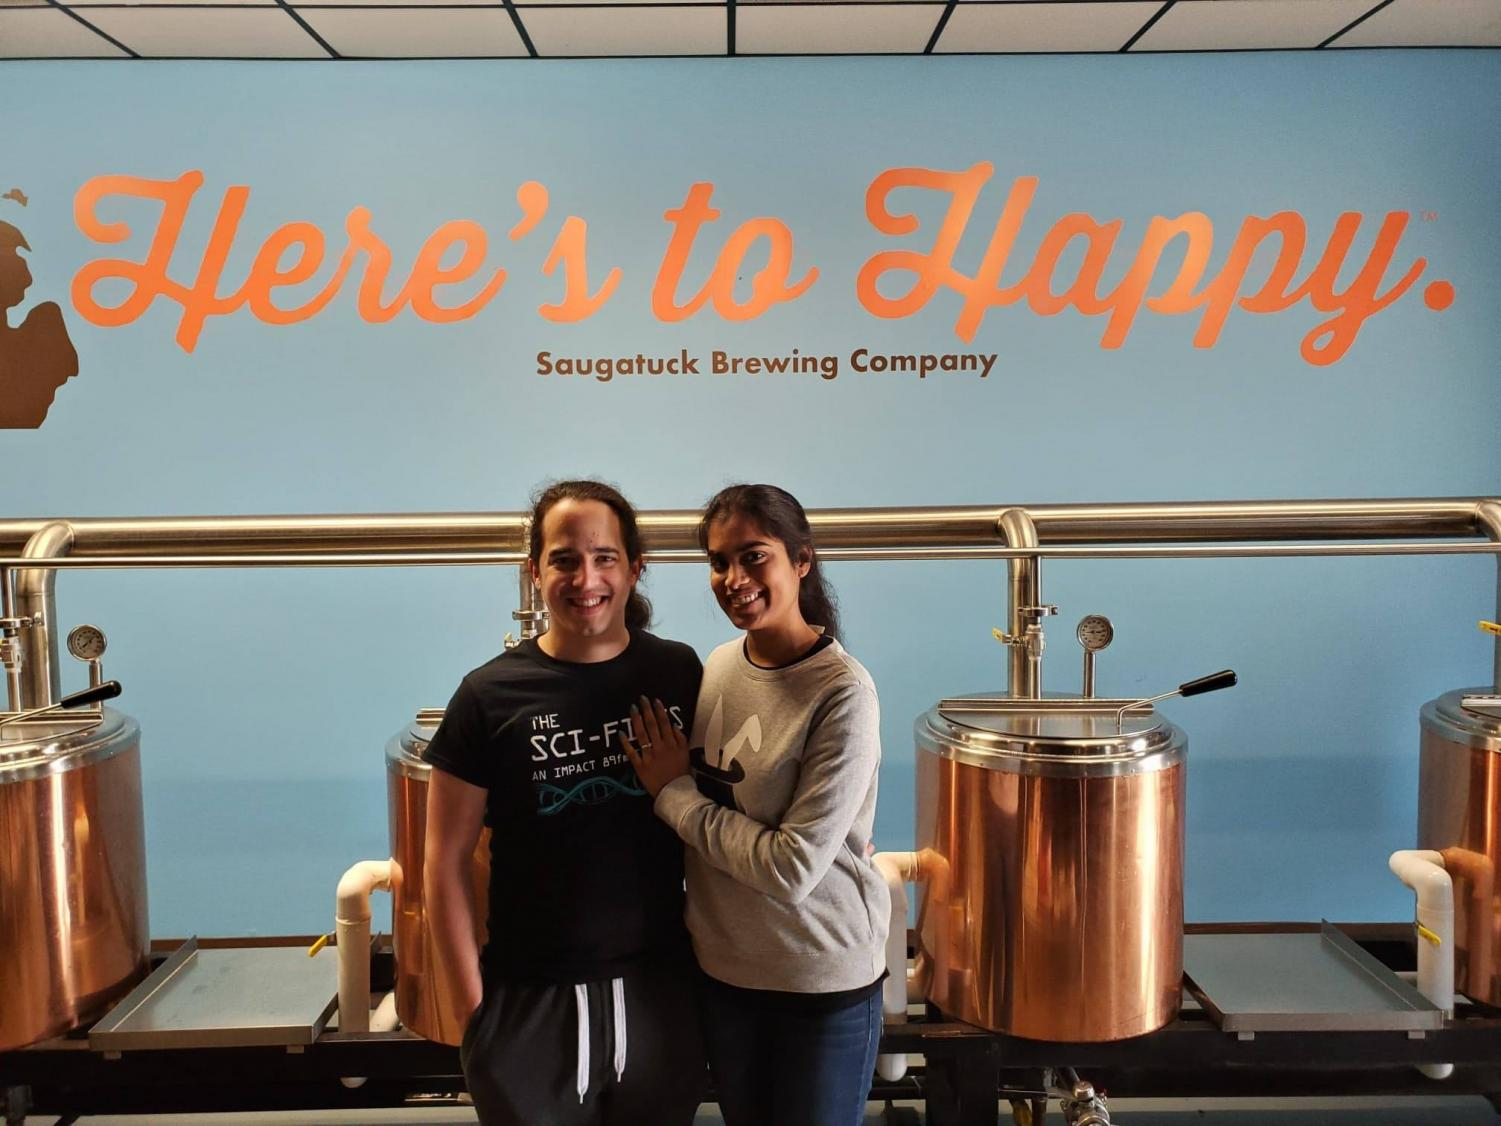 Chelsie Boodoo and Daniel Puentes, co-hosts for The Sci-Files, MSU SciComm President and Treasurer respectively, at the Saugatuck Brewery.